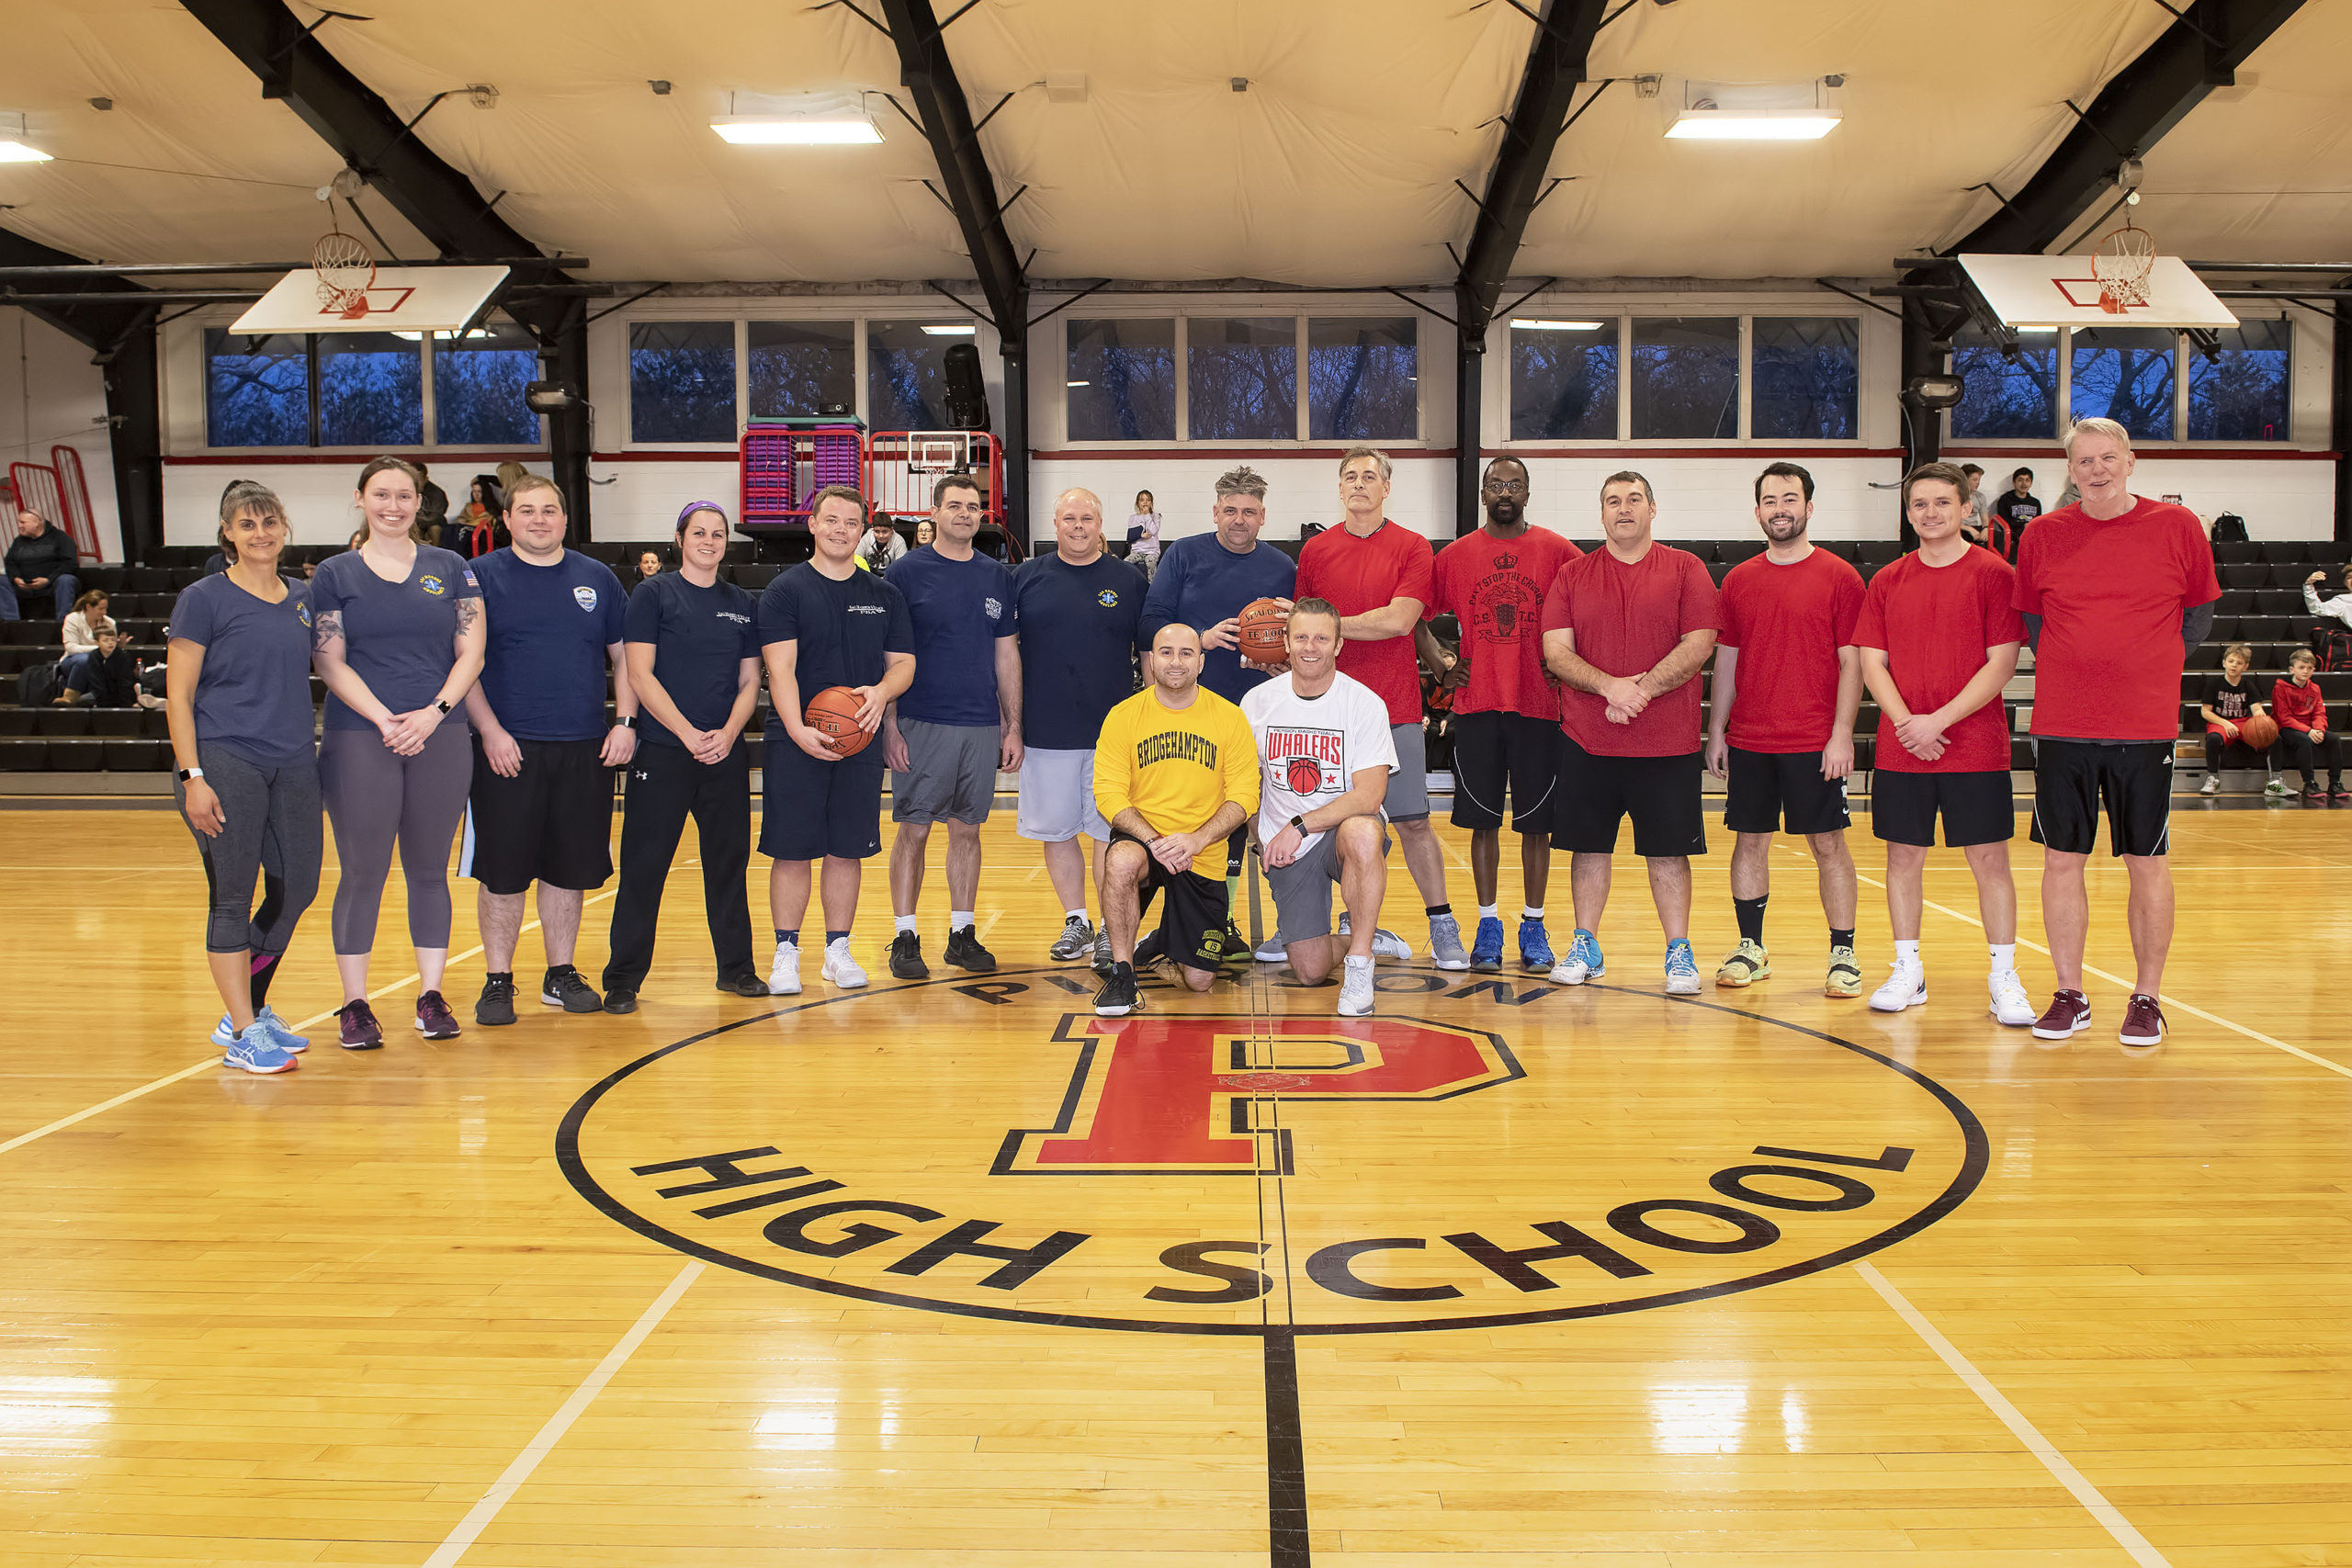 The Pierson faculty took on the Sag Harbor First Responders in a friendly game of basketball in the Pierson gymnasium on Friday afternoon.   MICHAEL HELLER